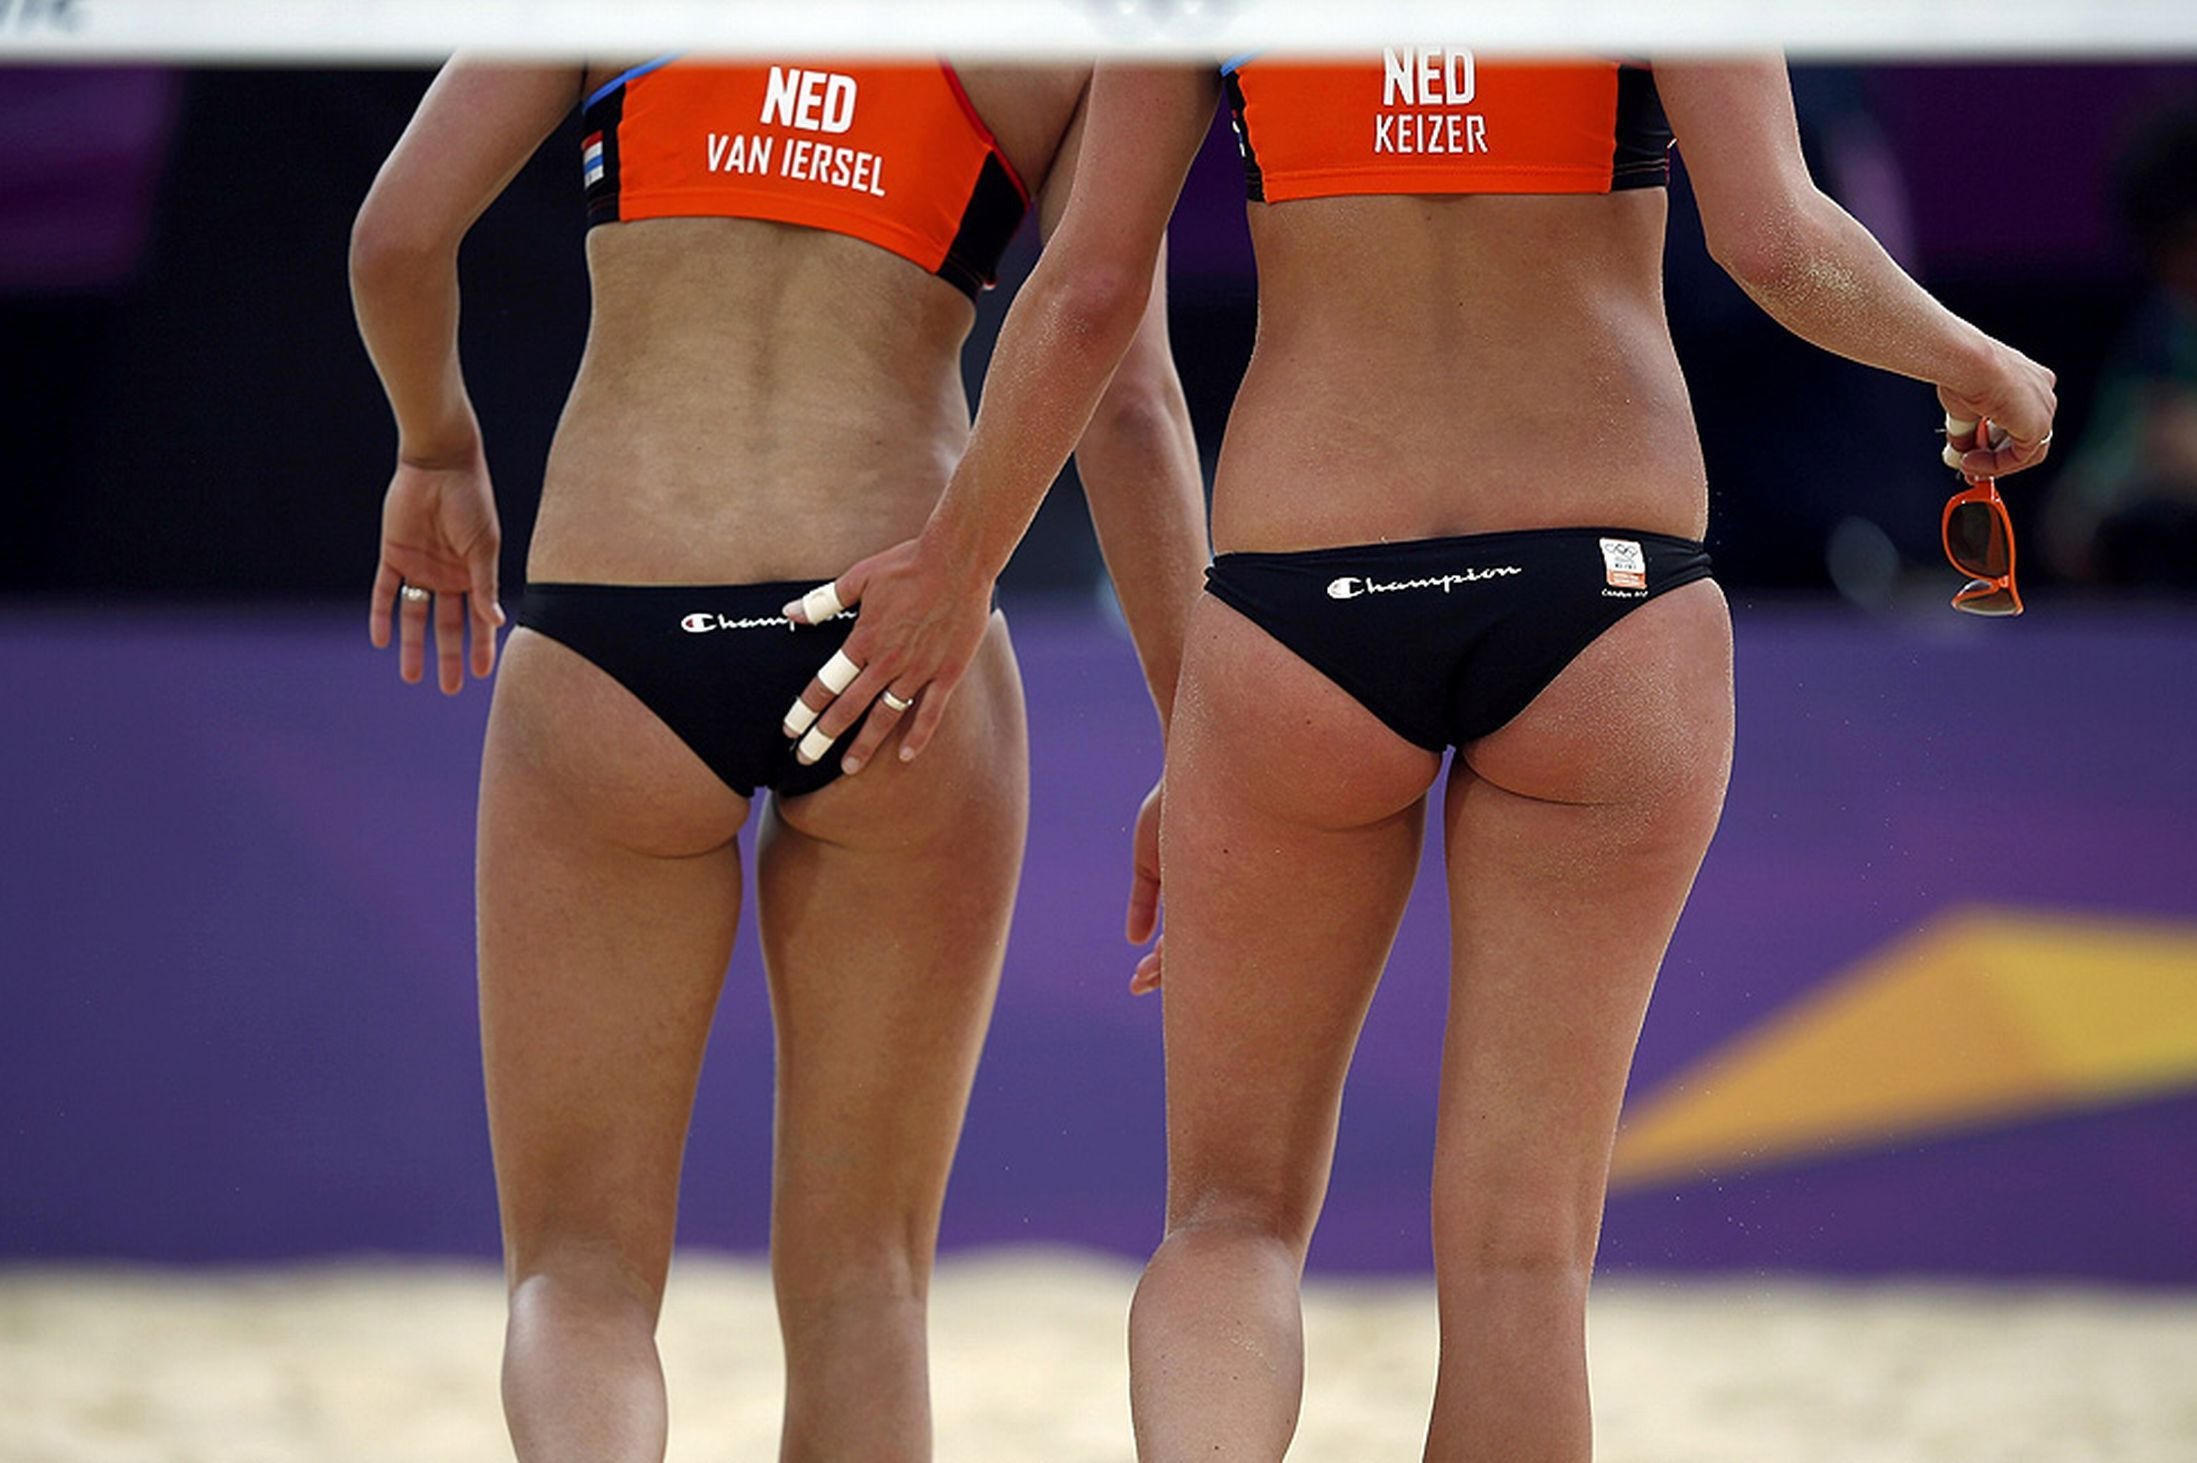 Pin On Beach Volleyball Girls London 2012 Olympics